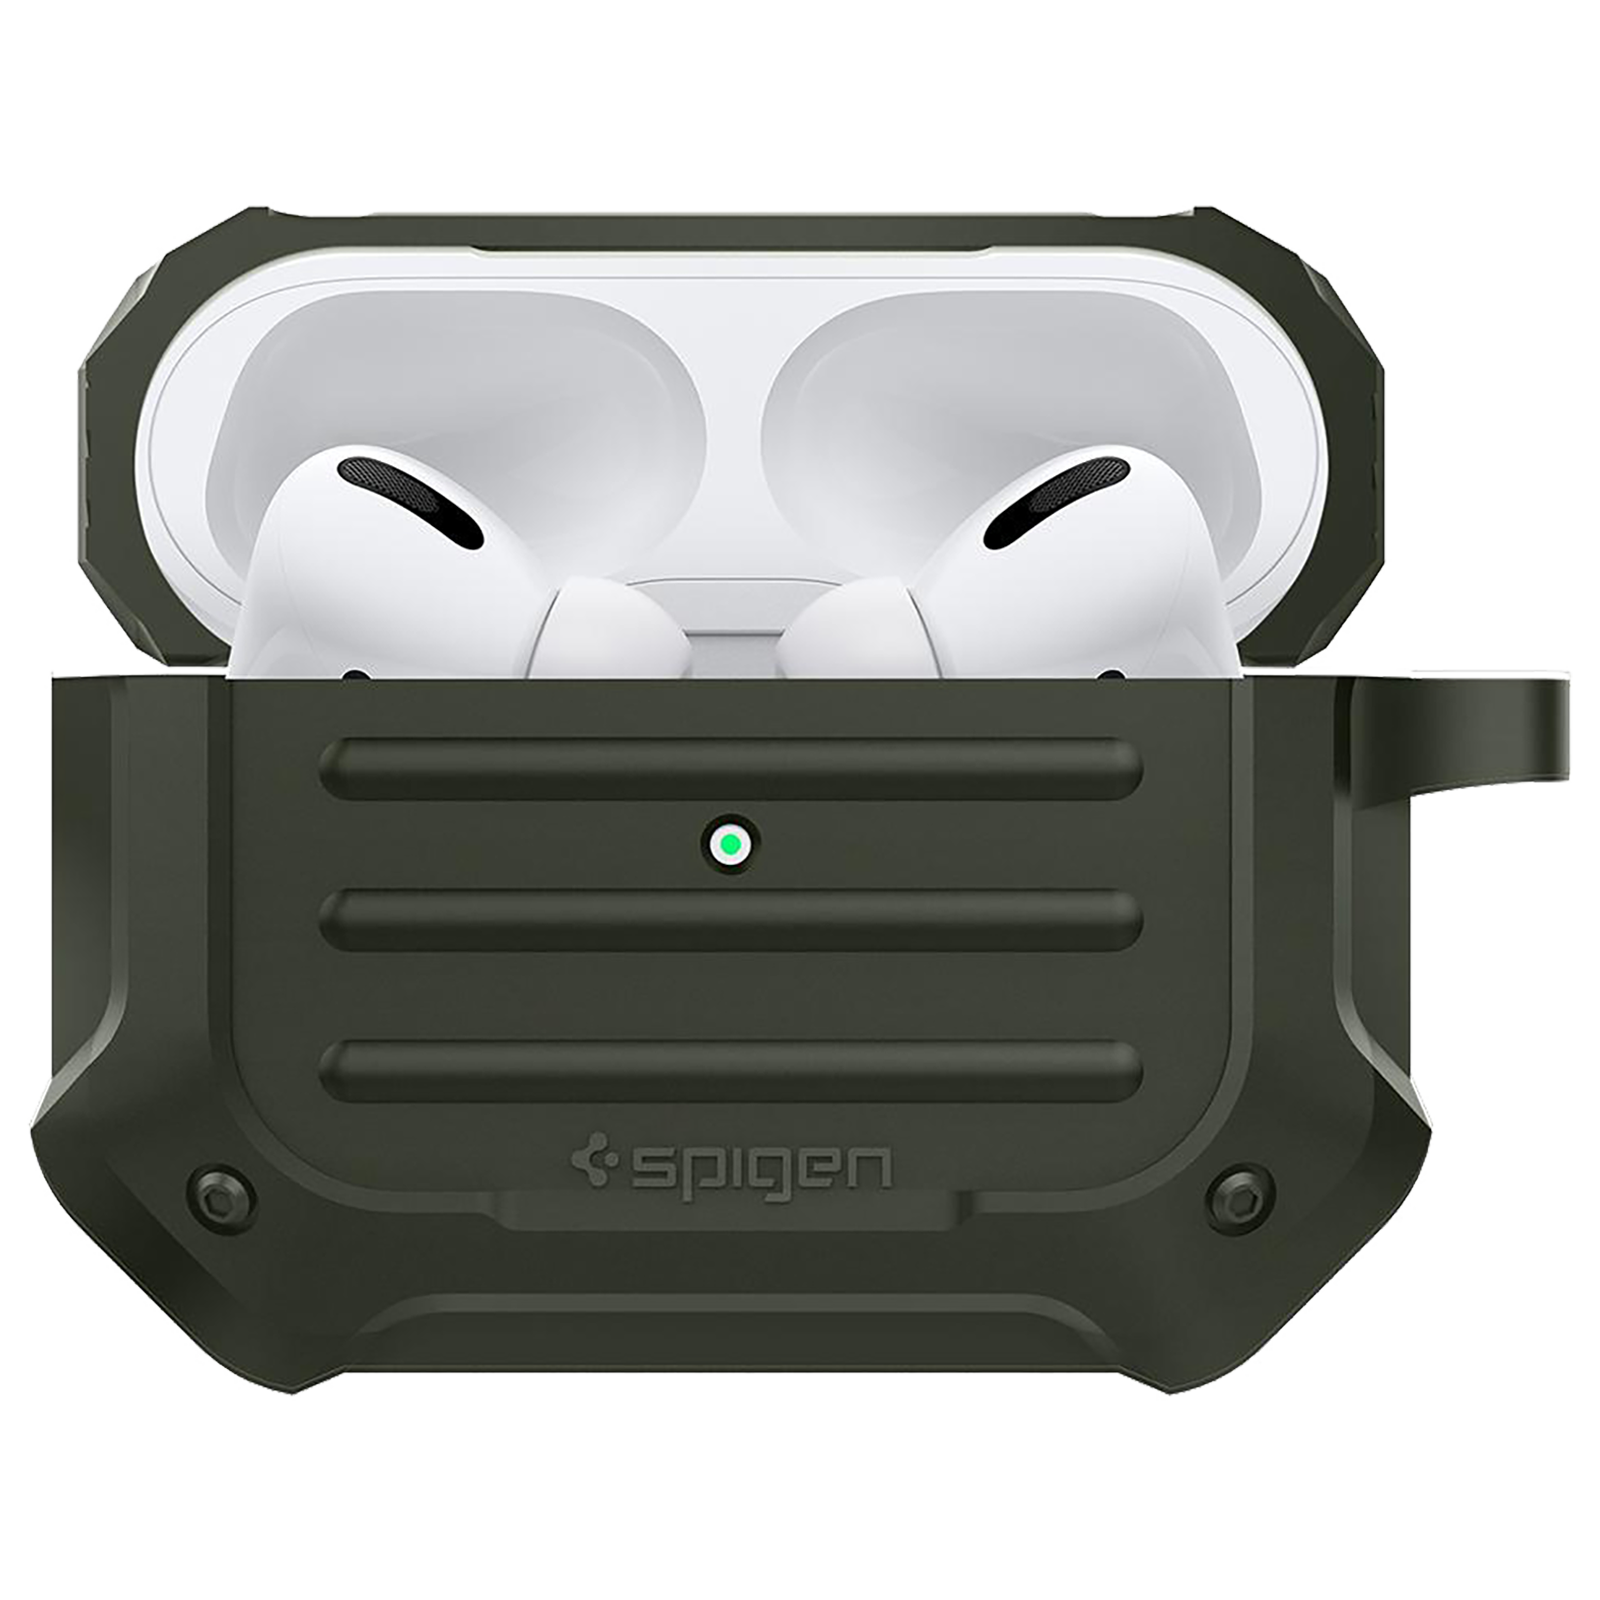 Spigen Tough Armor Silicone Full Cover Case For AirPods Pro (Key Ring For Easy Portability, ASD00539, Military Green)_1